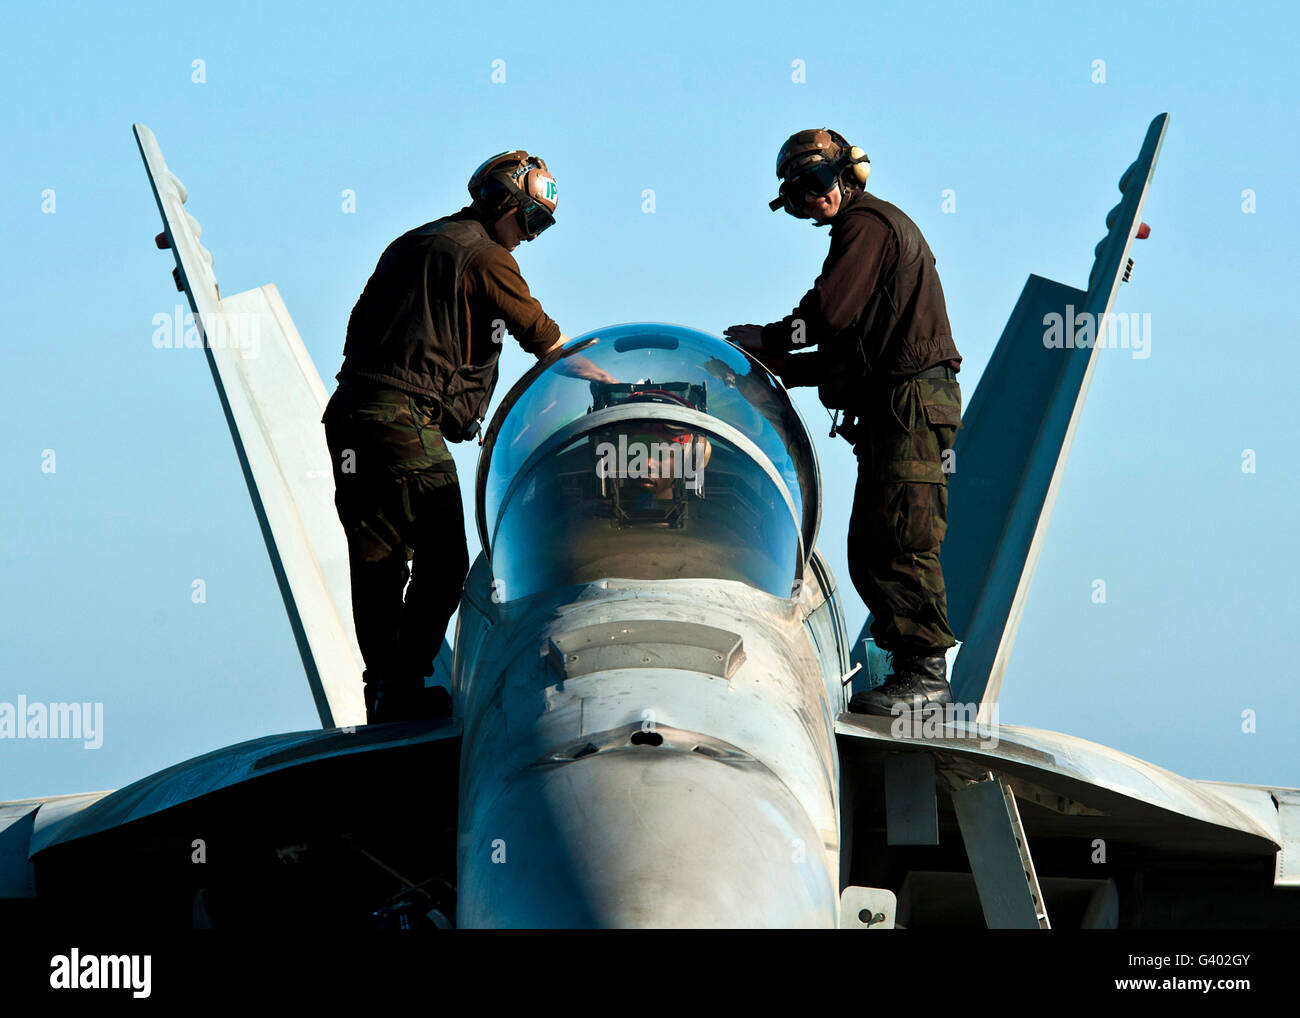 U.S. Navy sailors wipe down the canopy of an F/A-18F Super Hornet. Stock Photo